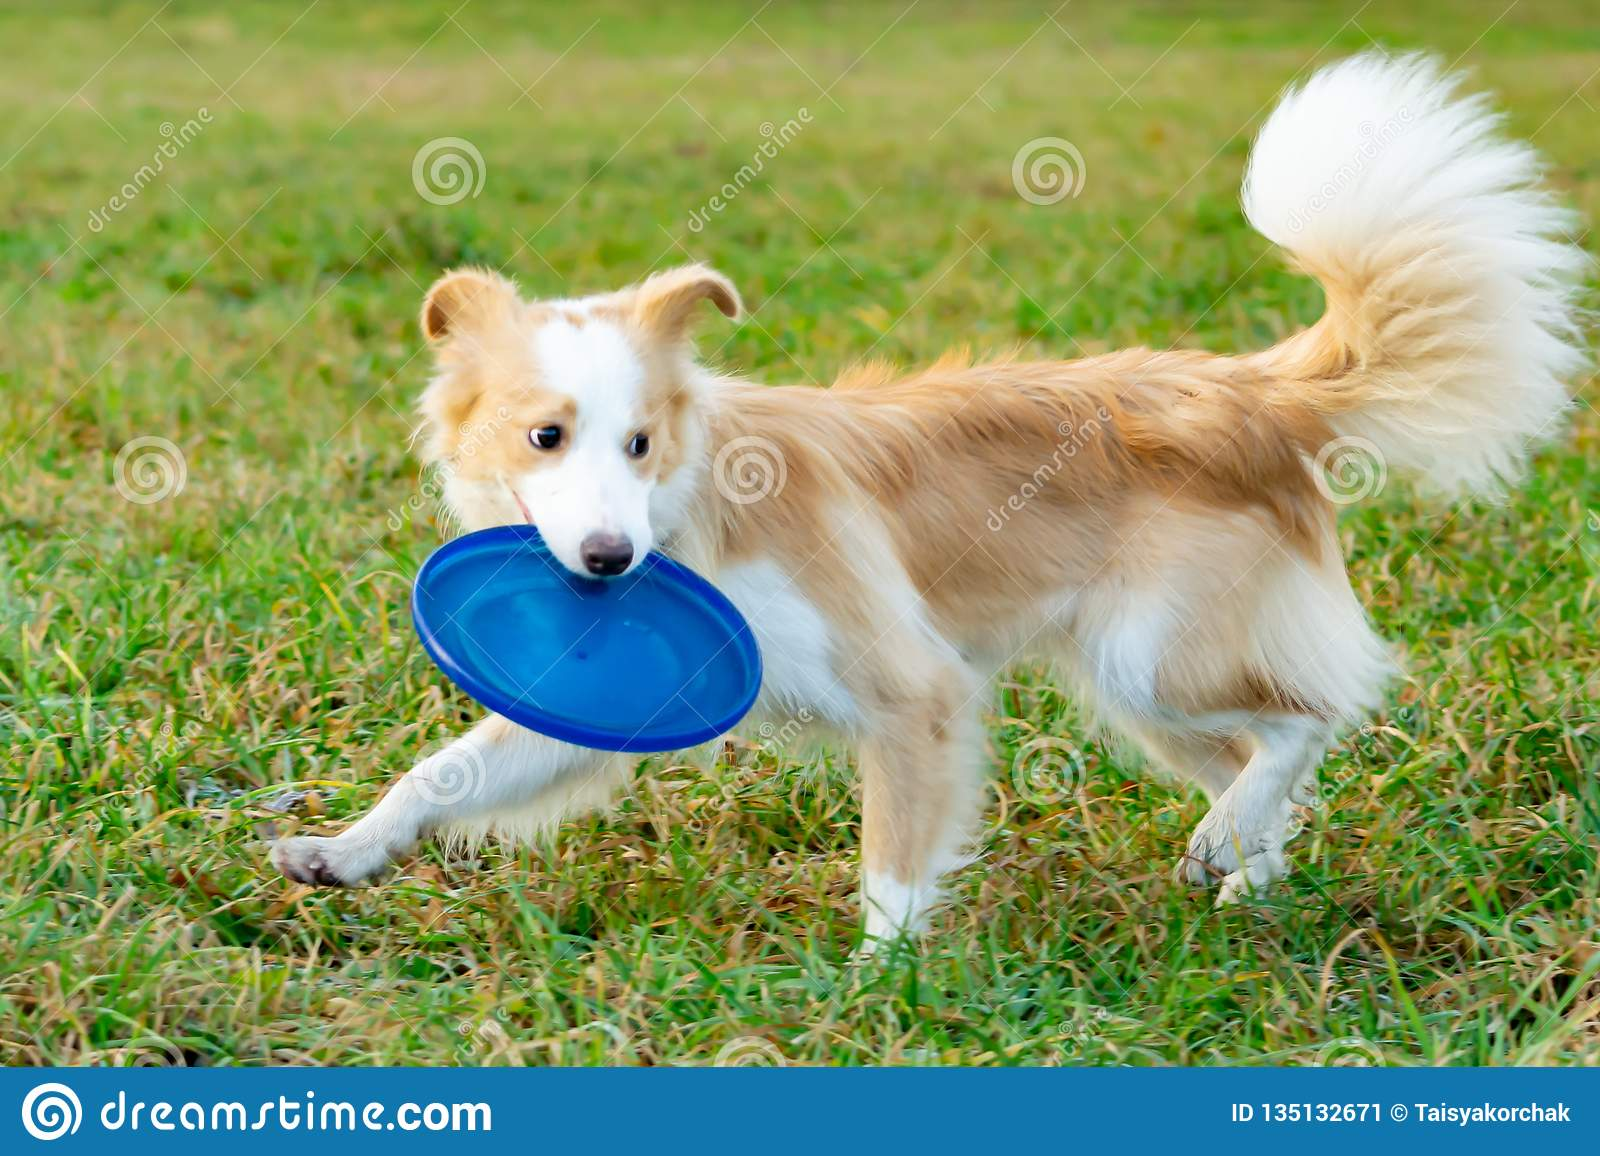 Border collie. The dog catches the frisbee on the fly. The pet plays with its owner.